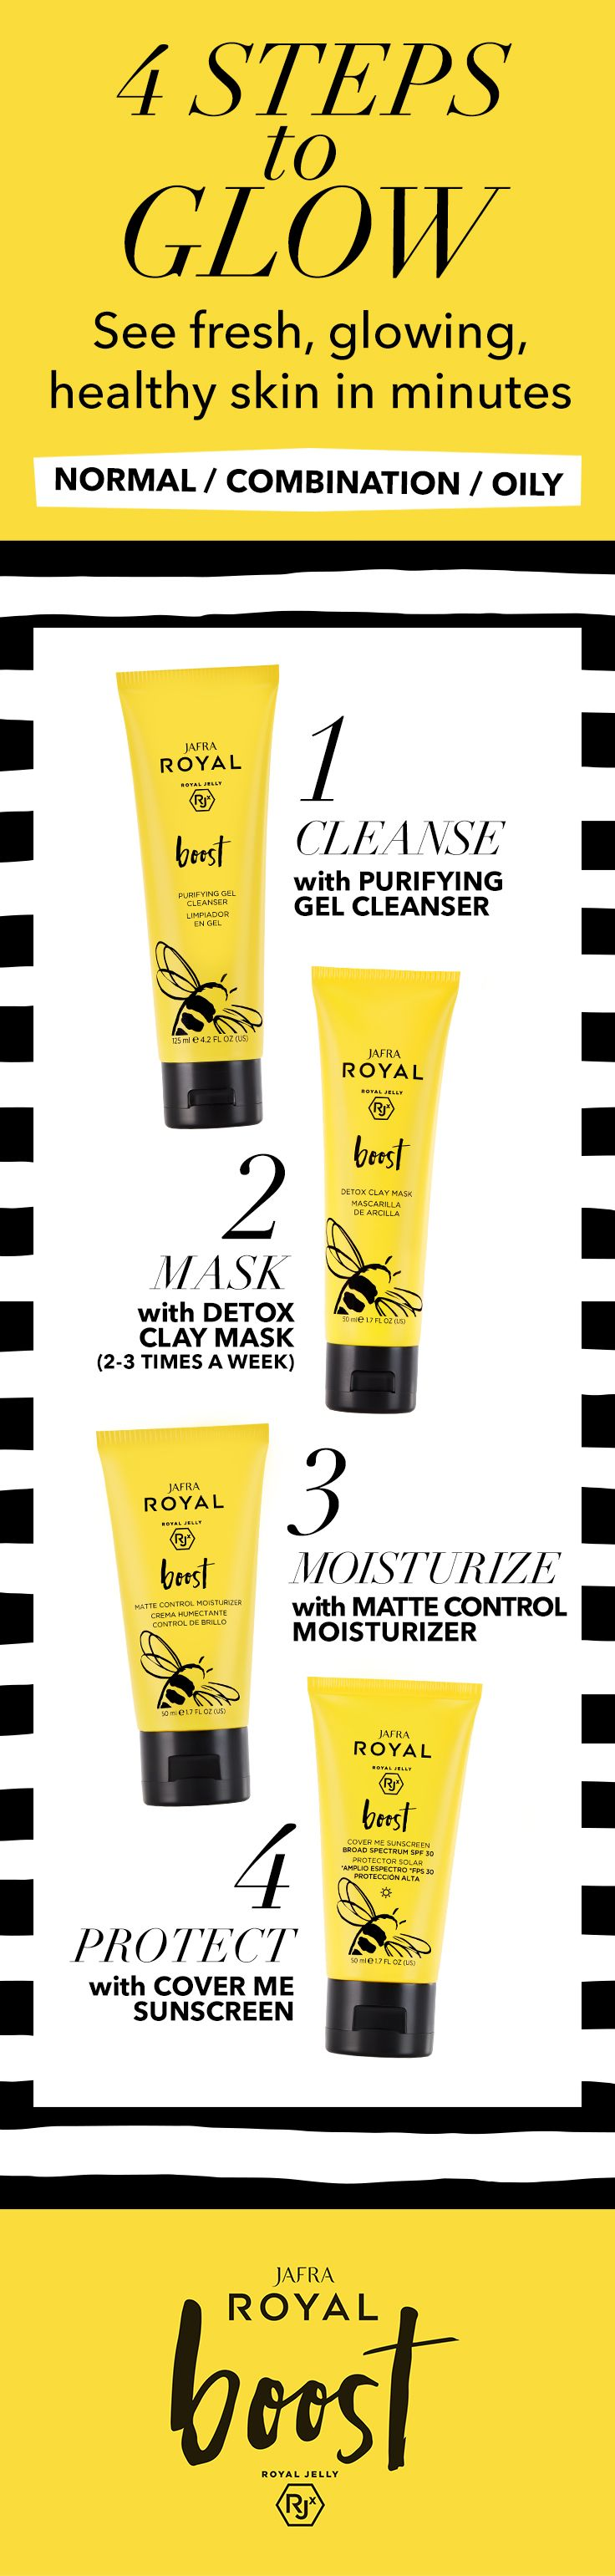 Here Are The 4 Steps To Glow Jafra Royal Boost For Normal Combination Oily Skin Will Let You See Fresh Glowing Purifying Gel Cleanser Gel Cleanser Skin Care